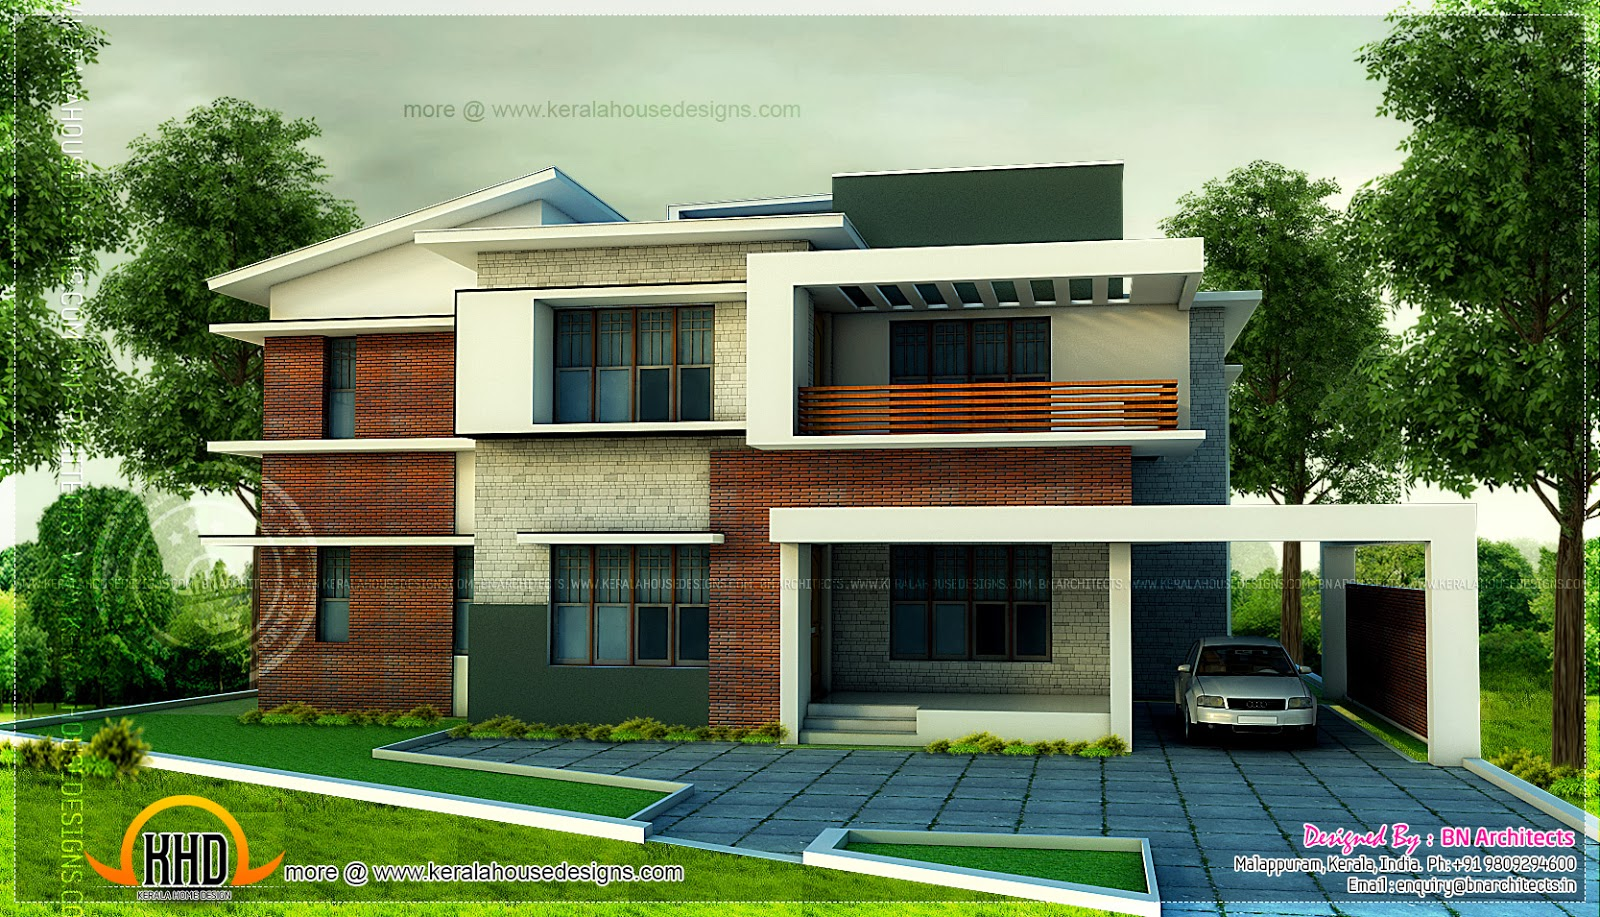 5 bedroom modern home in 3440 sq feet floor plan for 5 bedroom new build homes